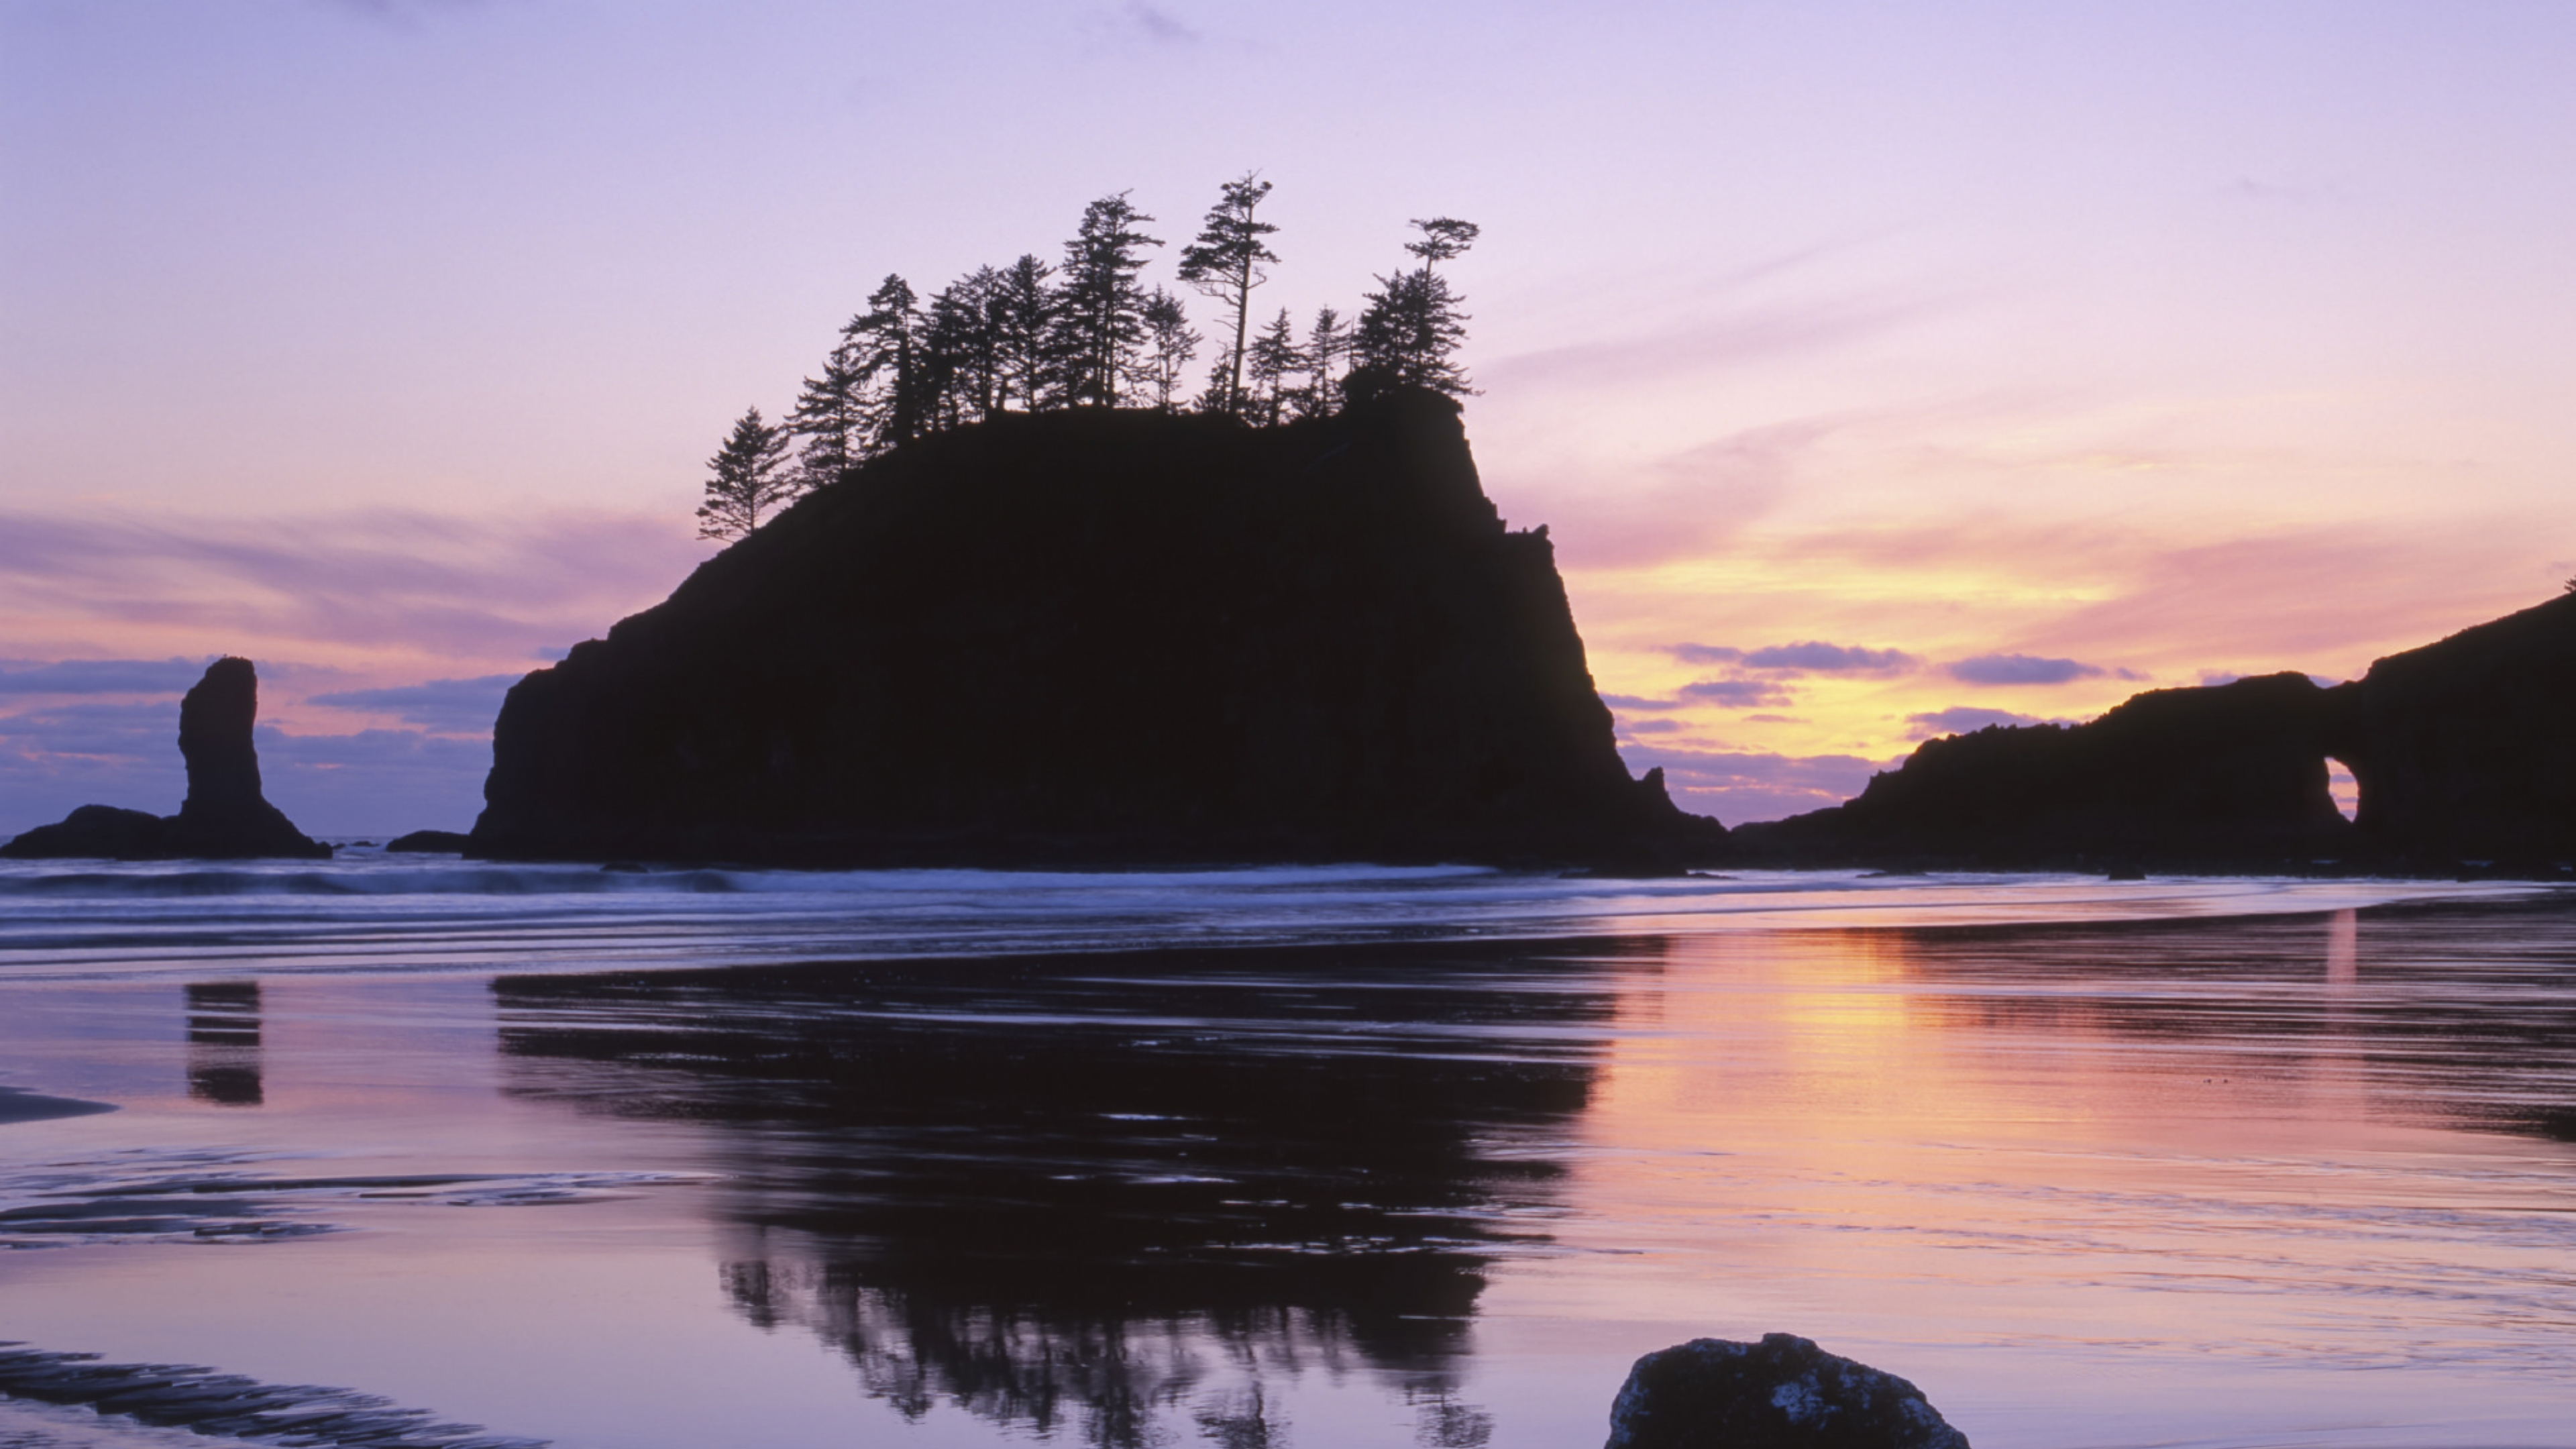 The colorful pink and purple sunset over the rocky islands on the shore of Olympic National Park